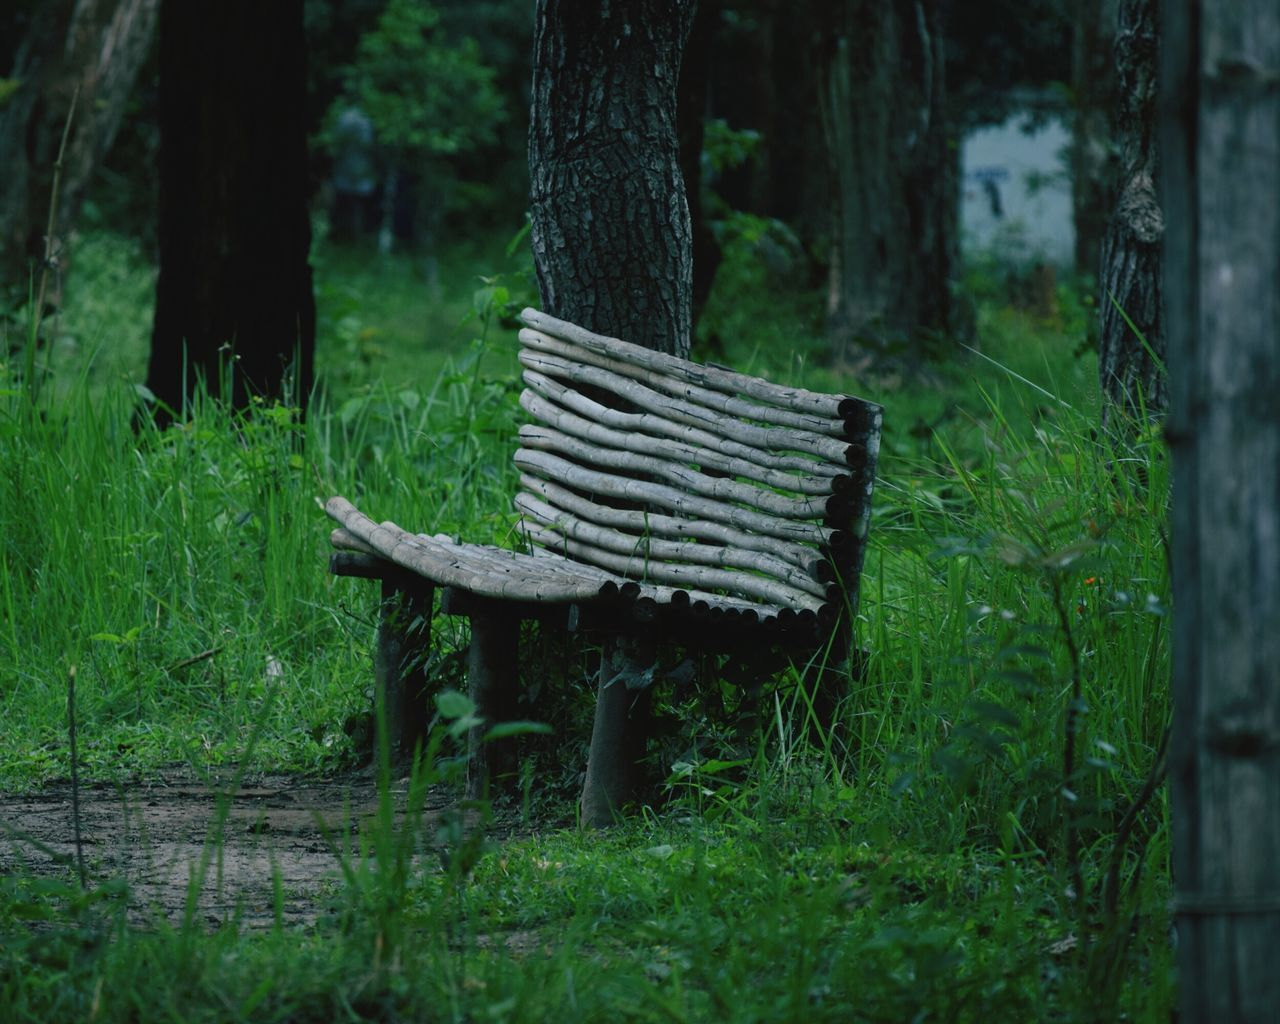 Green Chair Melancholy Coorg Woods Trees